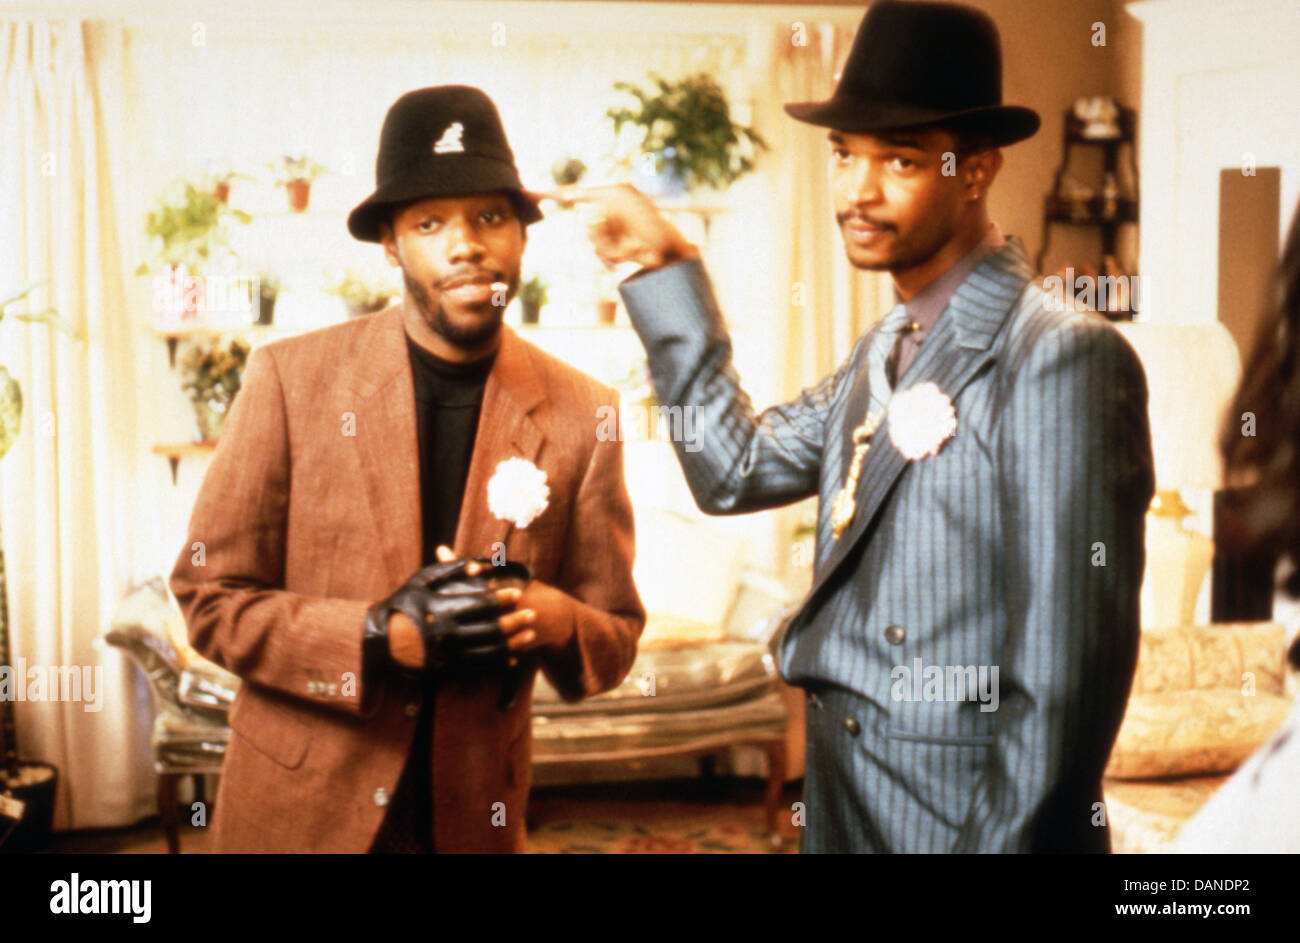 Does Damon and keenen ivory wayans rather